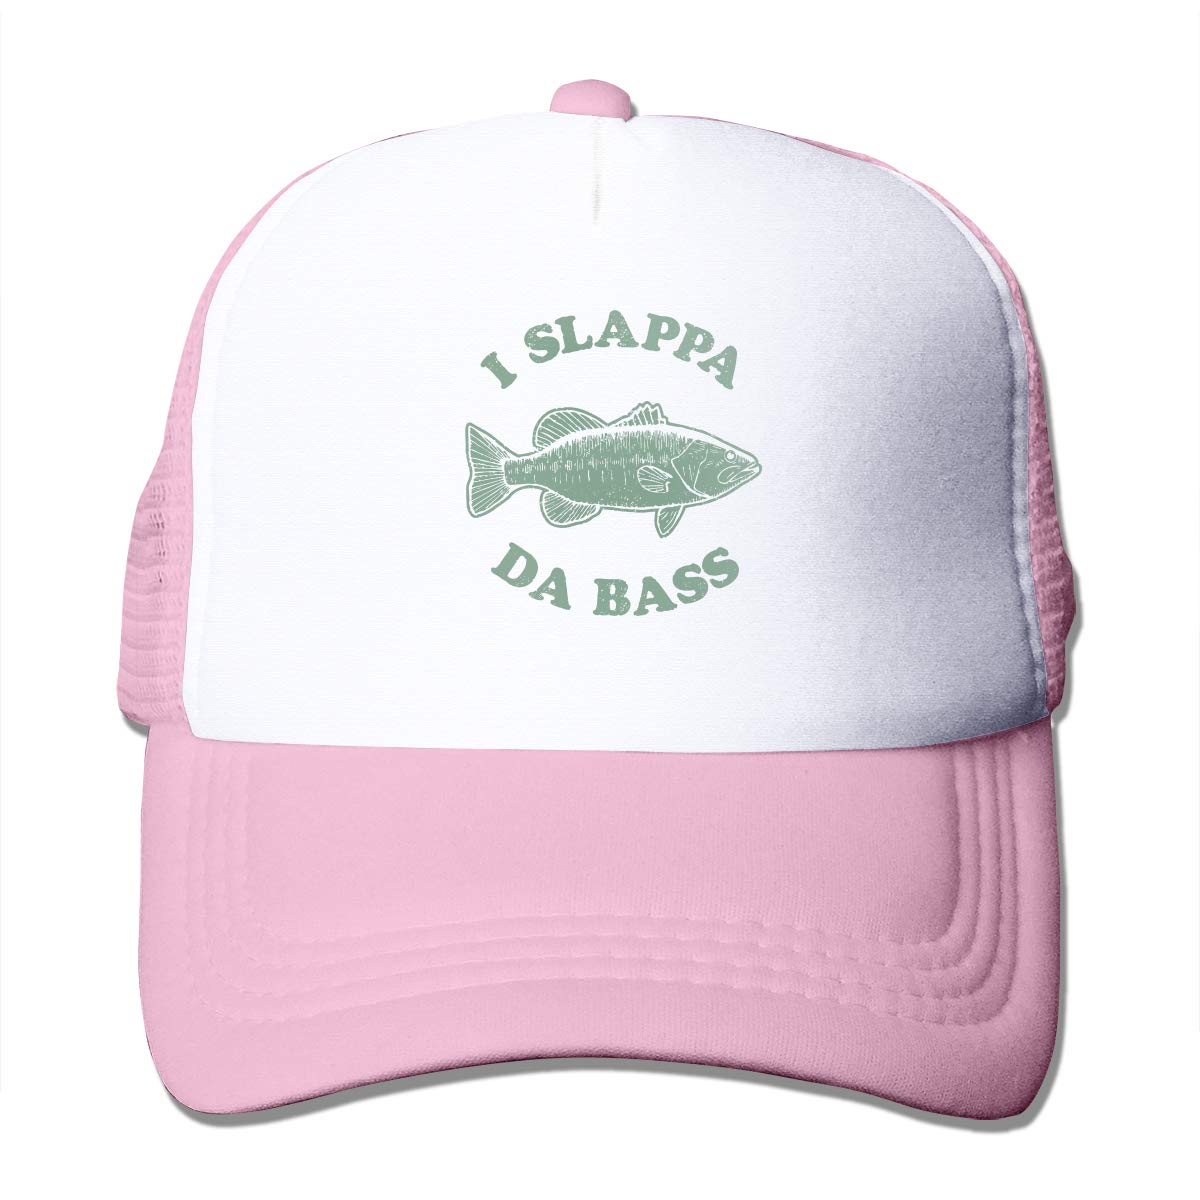 I Slappa Da Bass Adult Trucker Baseball Mesh Cap Adjustable Hat for Men Women